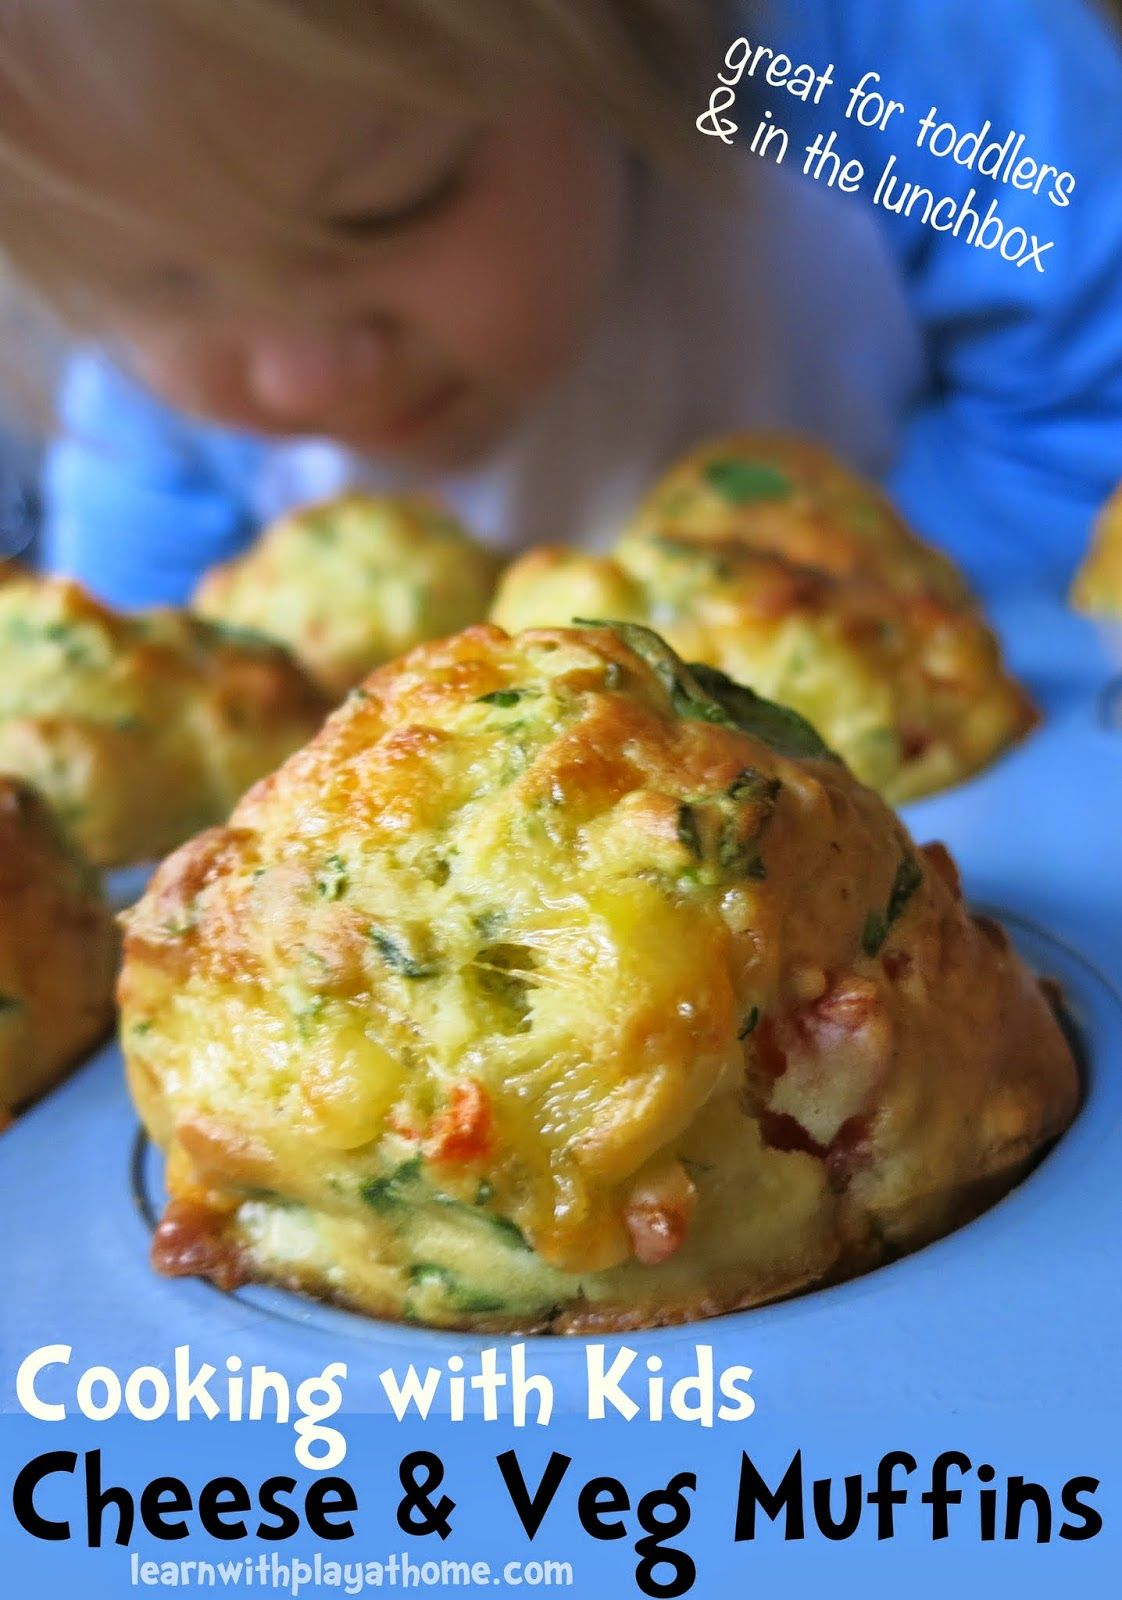 Cheese and Veg Muffins. Cooking with Kids images